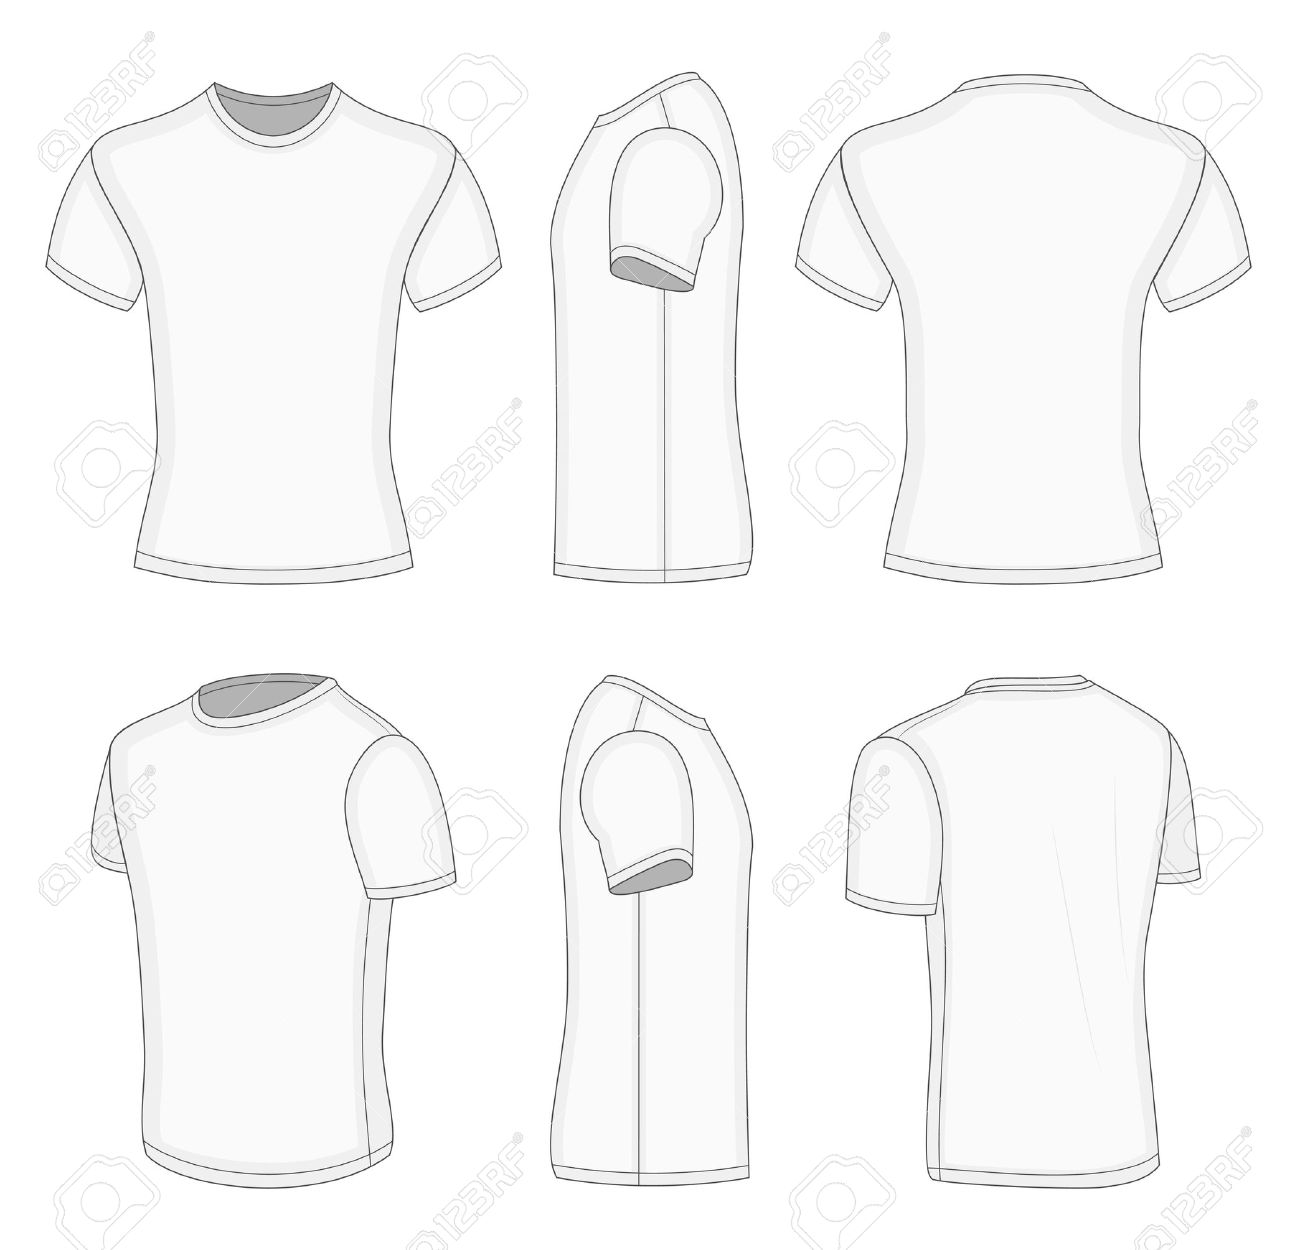 Mens White Short Sleeve T Shirt Design Templates Front Back Half